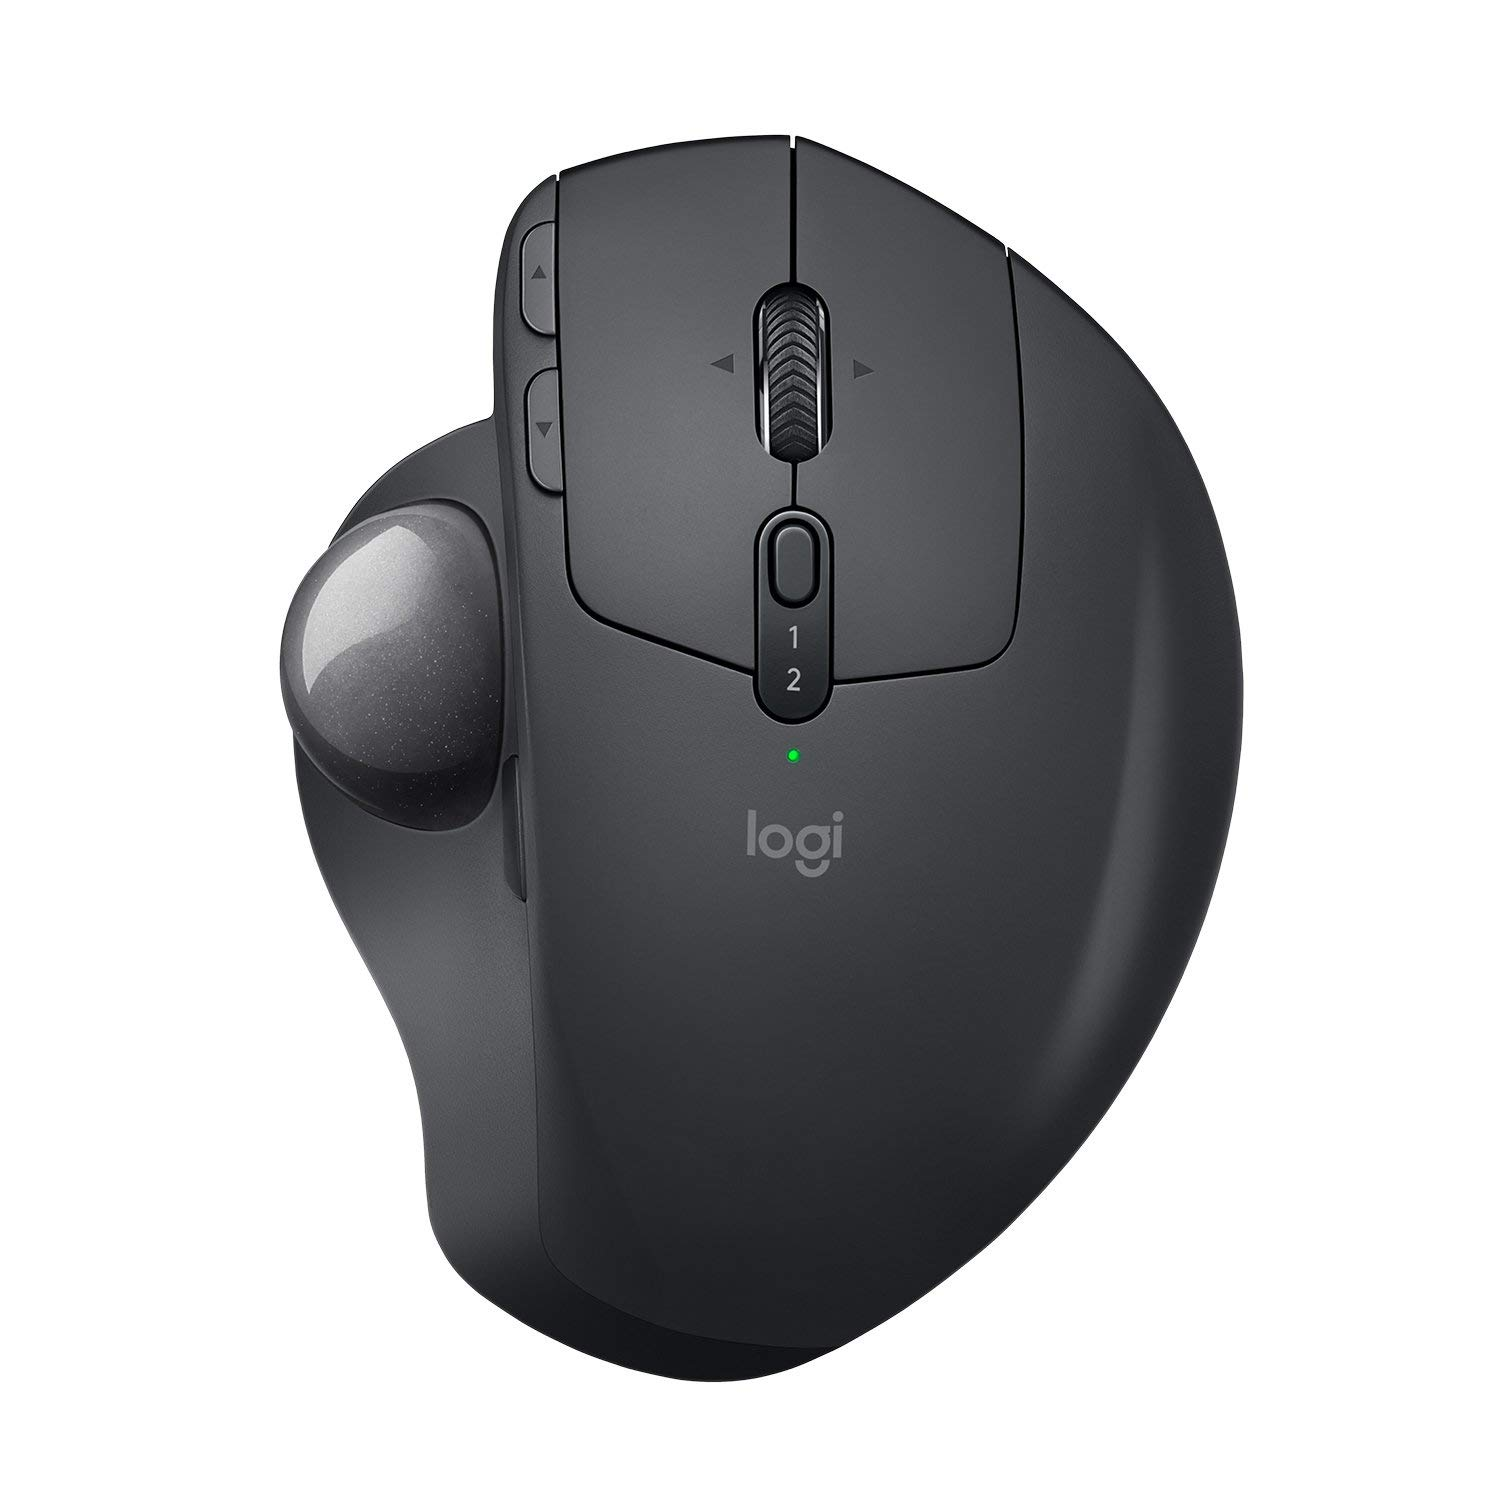 What's the Best Gaming Mouse According to Reddit?